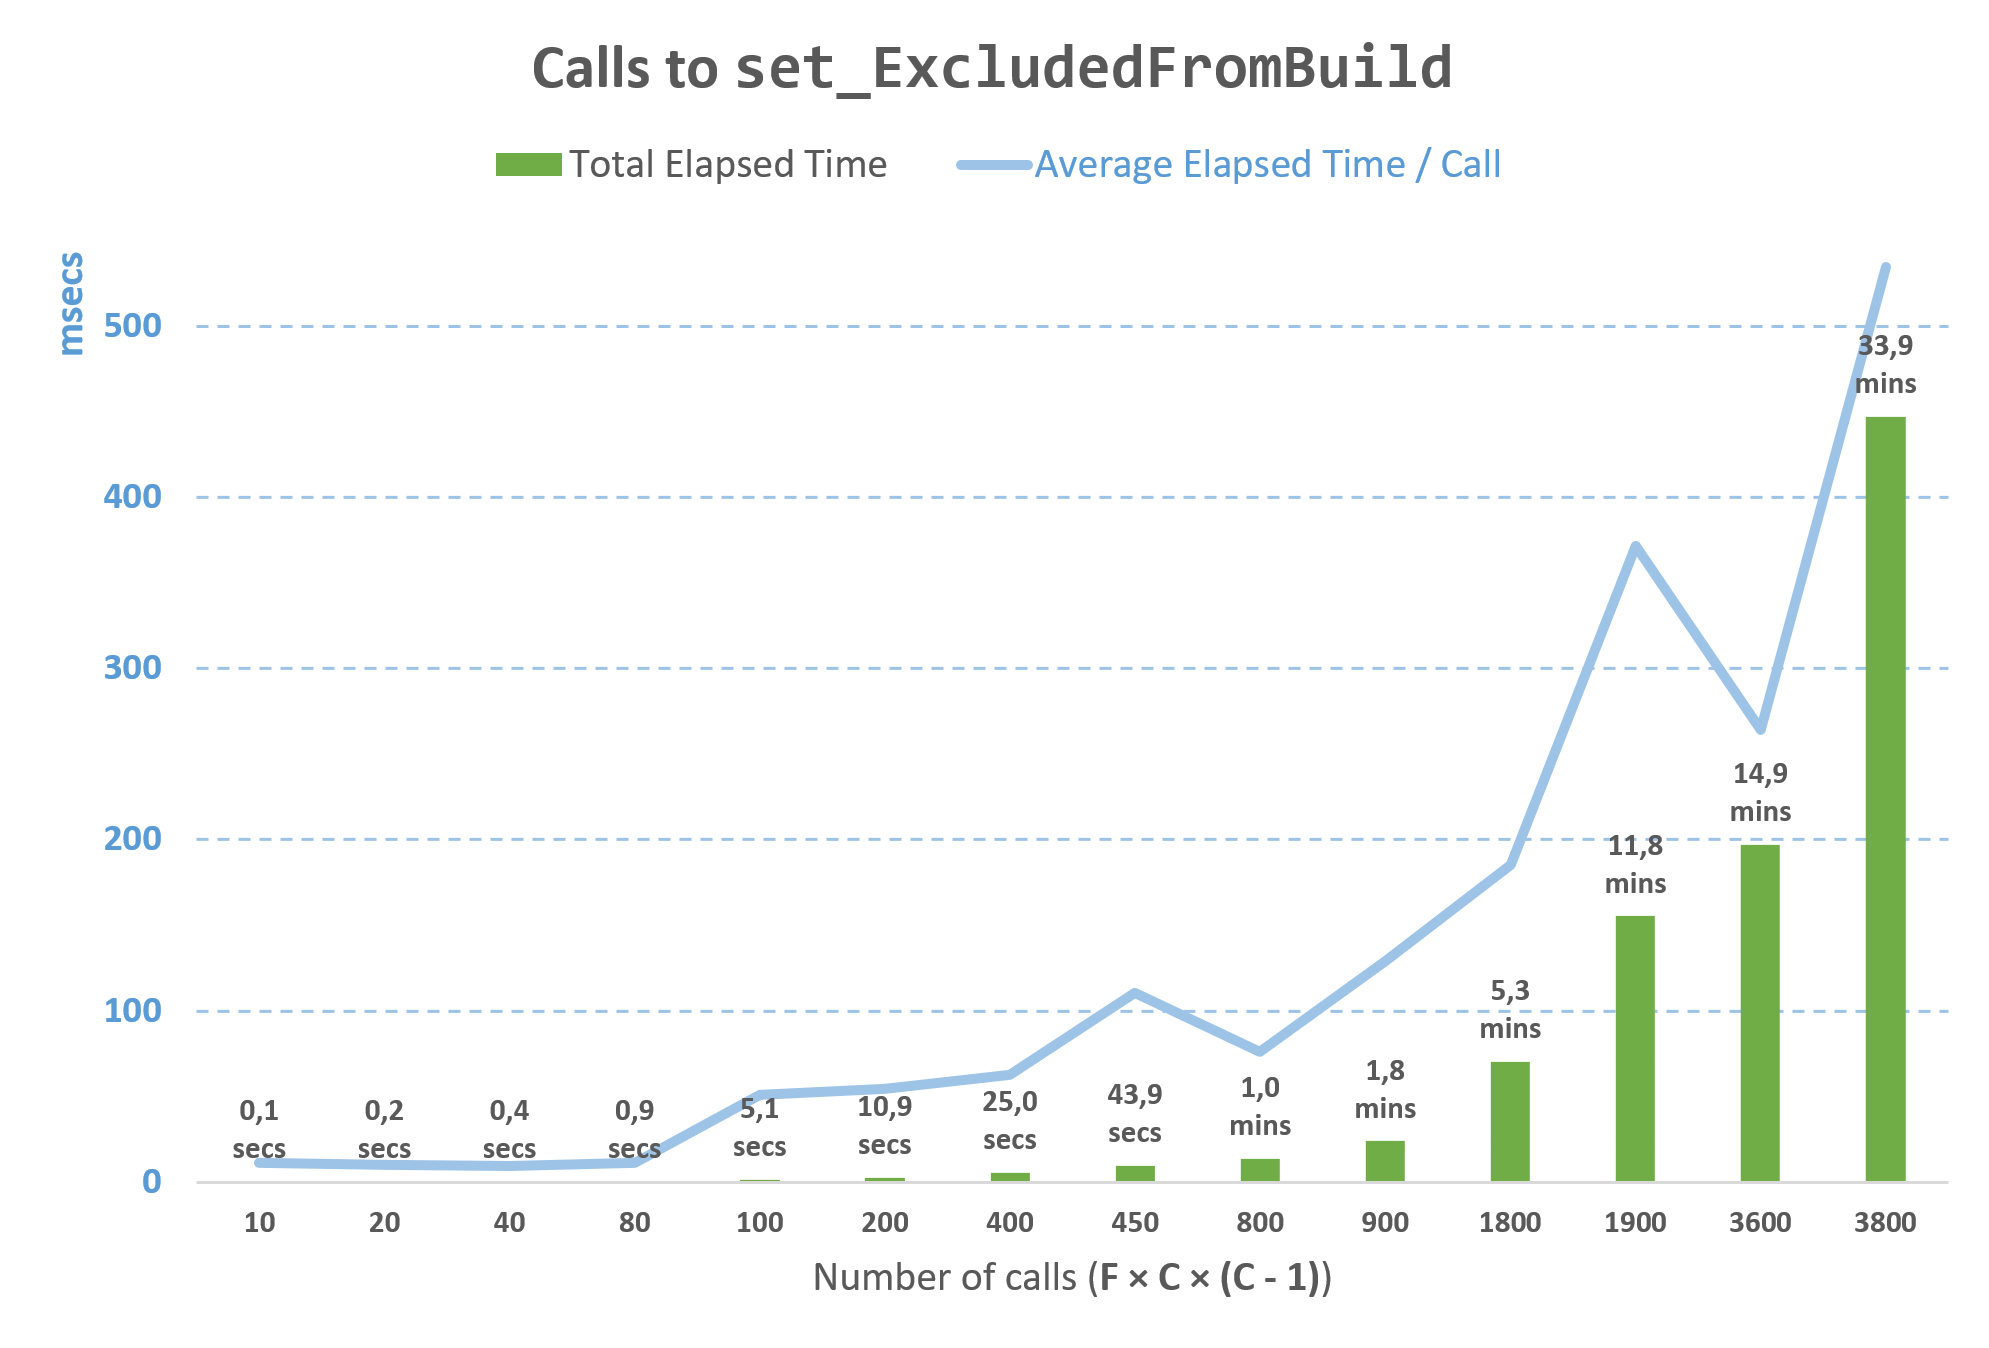 Calls to set_ExcludedFromBuild